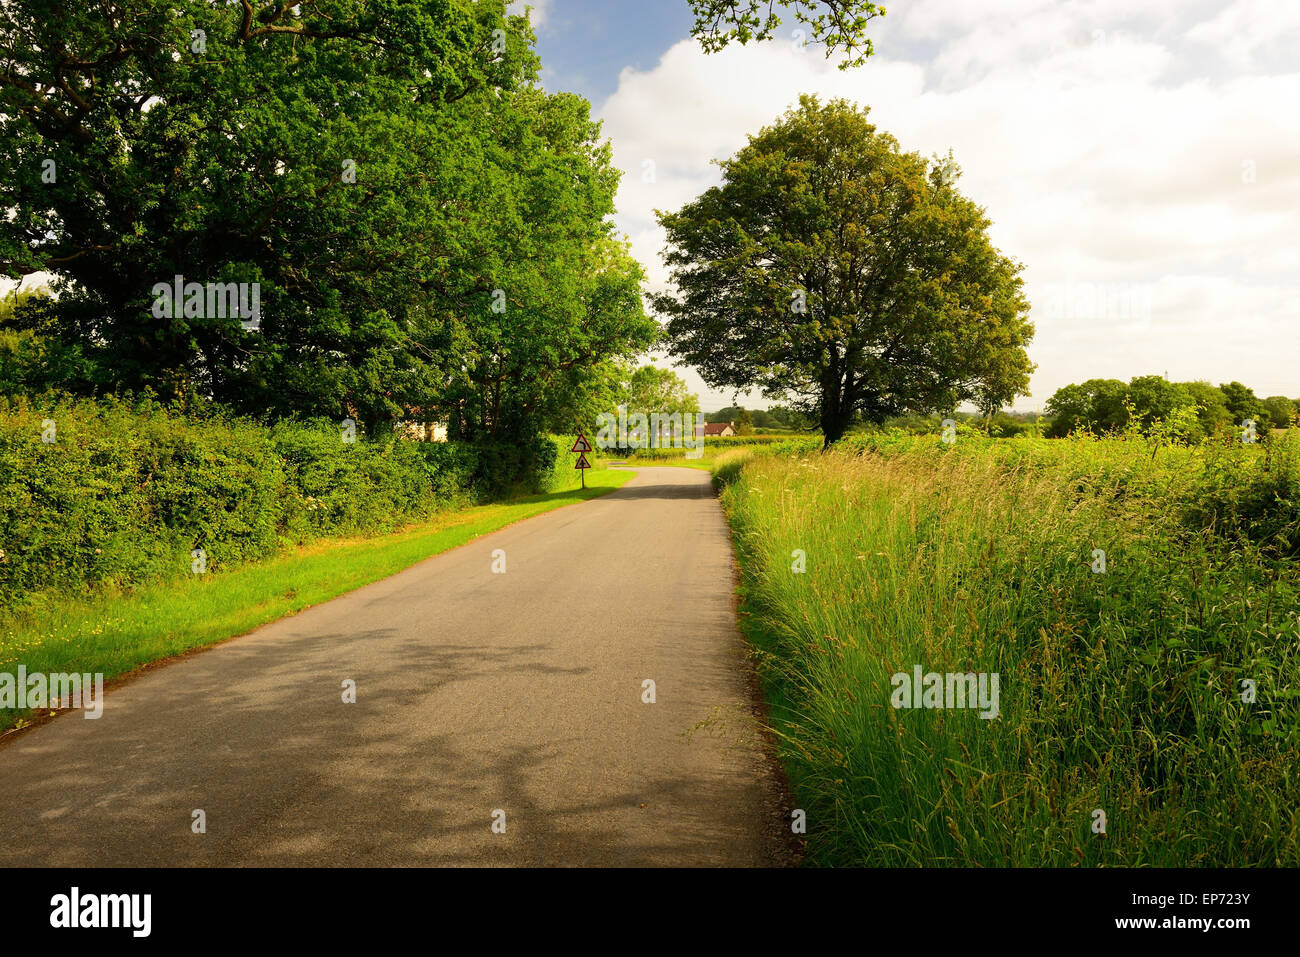 Country road with no traffic. - Stock Image